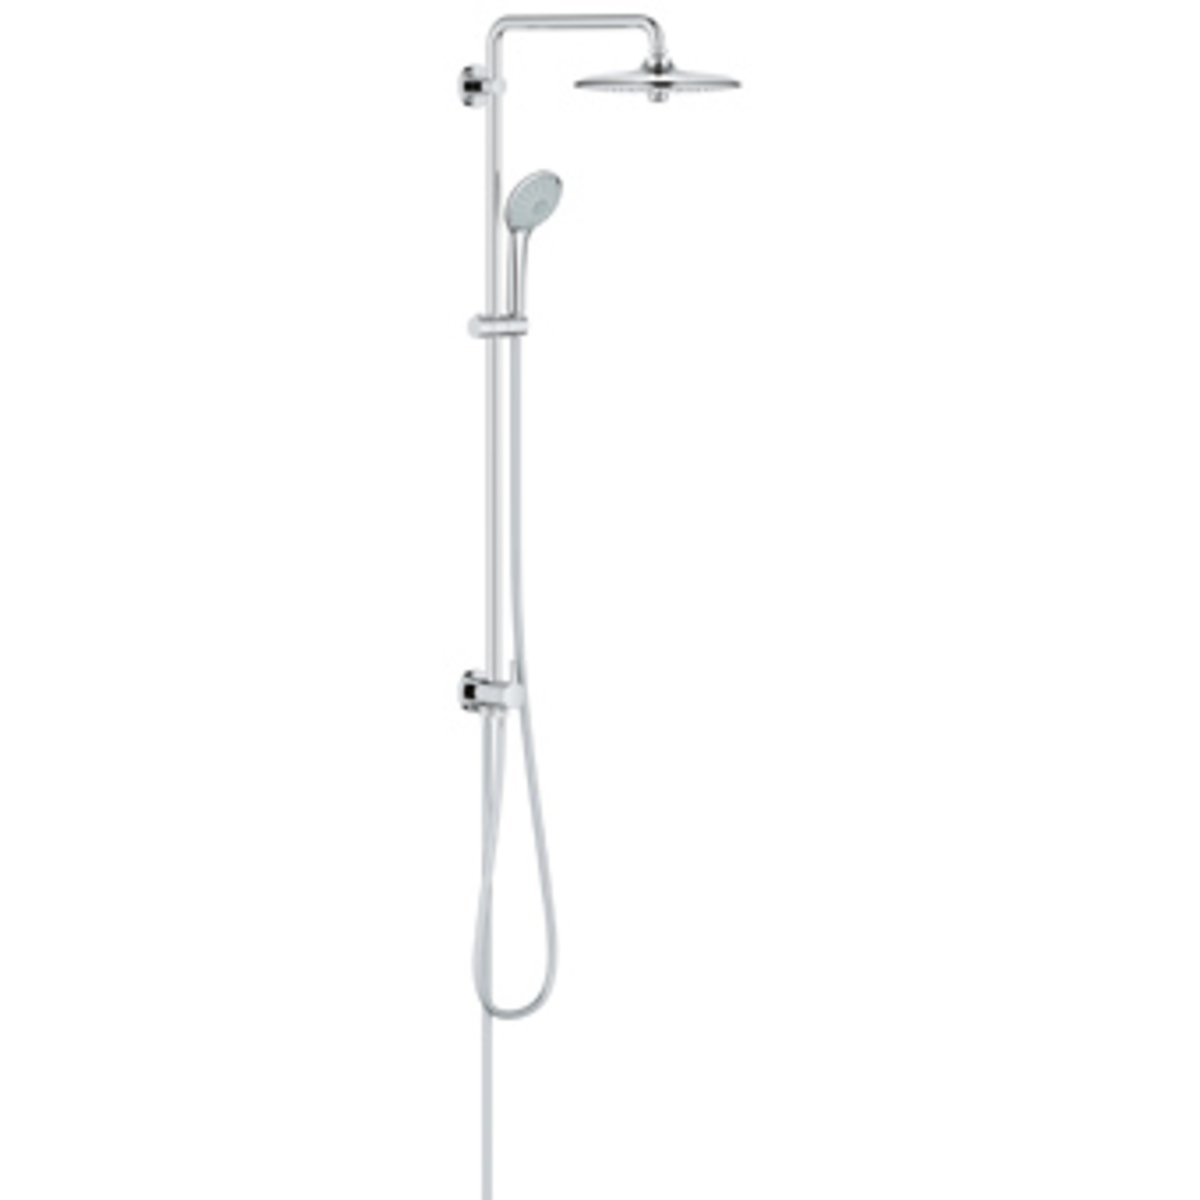 grohe euphoria douche pluie 26cm avec inverseur et douchette euphoria massage chrome 27421002. Black Bedroom Furniture Sets. Home Design Ideas